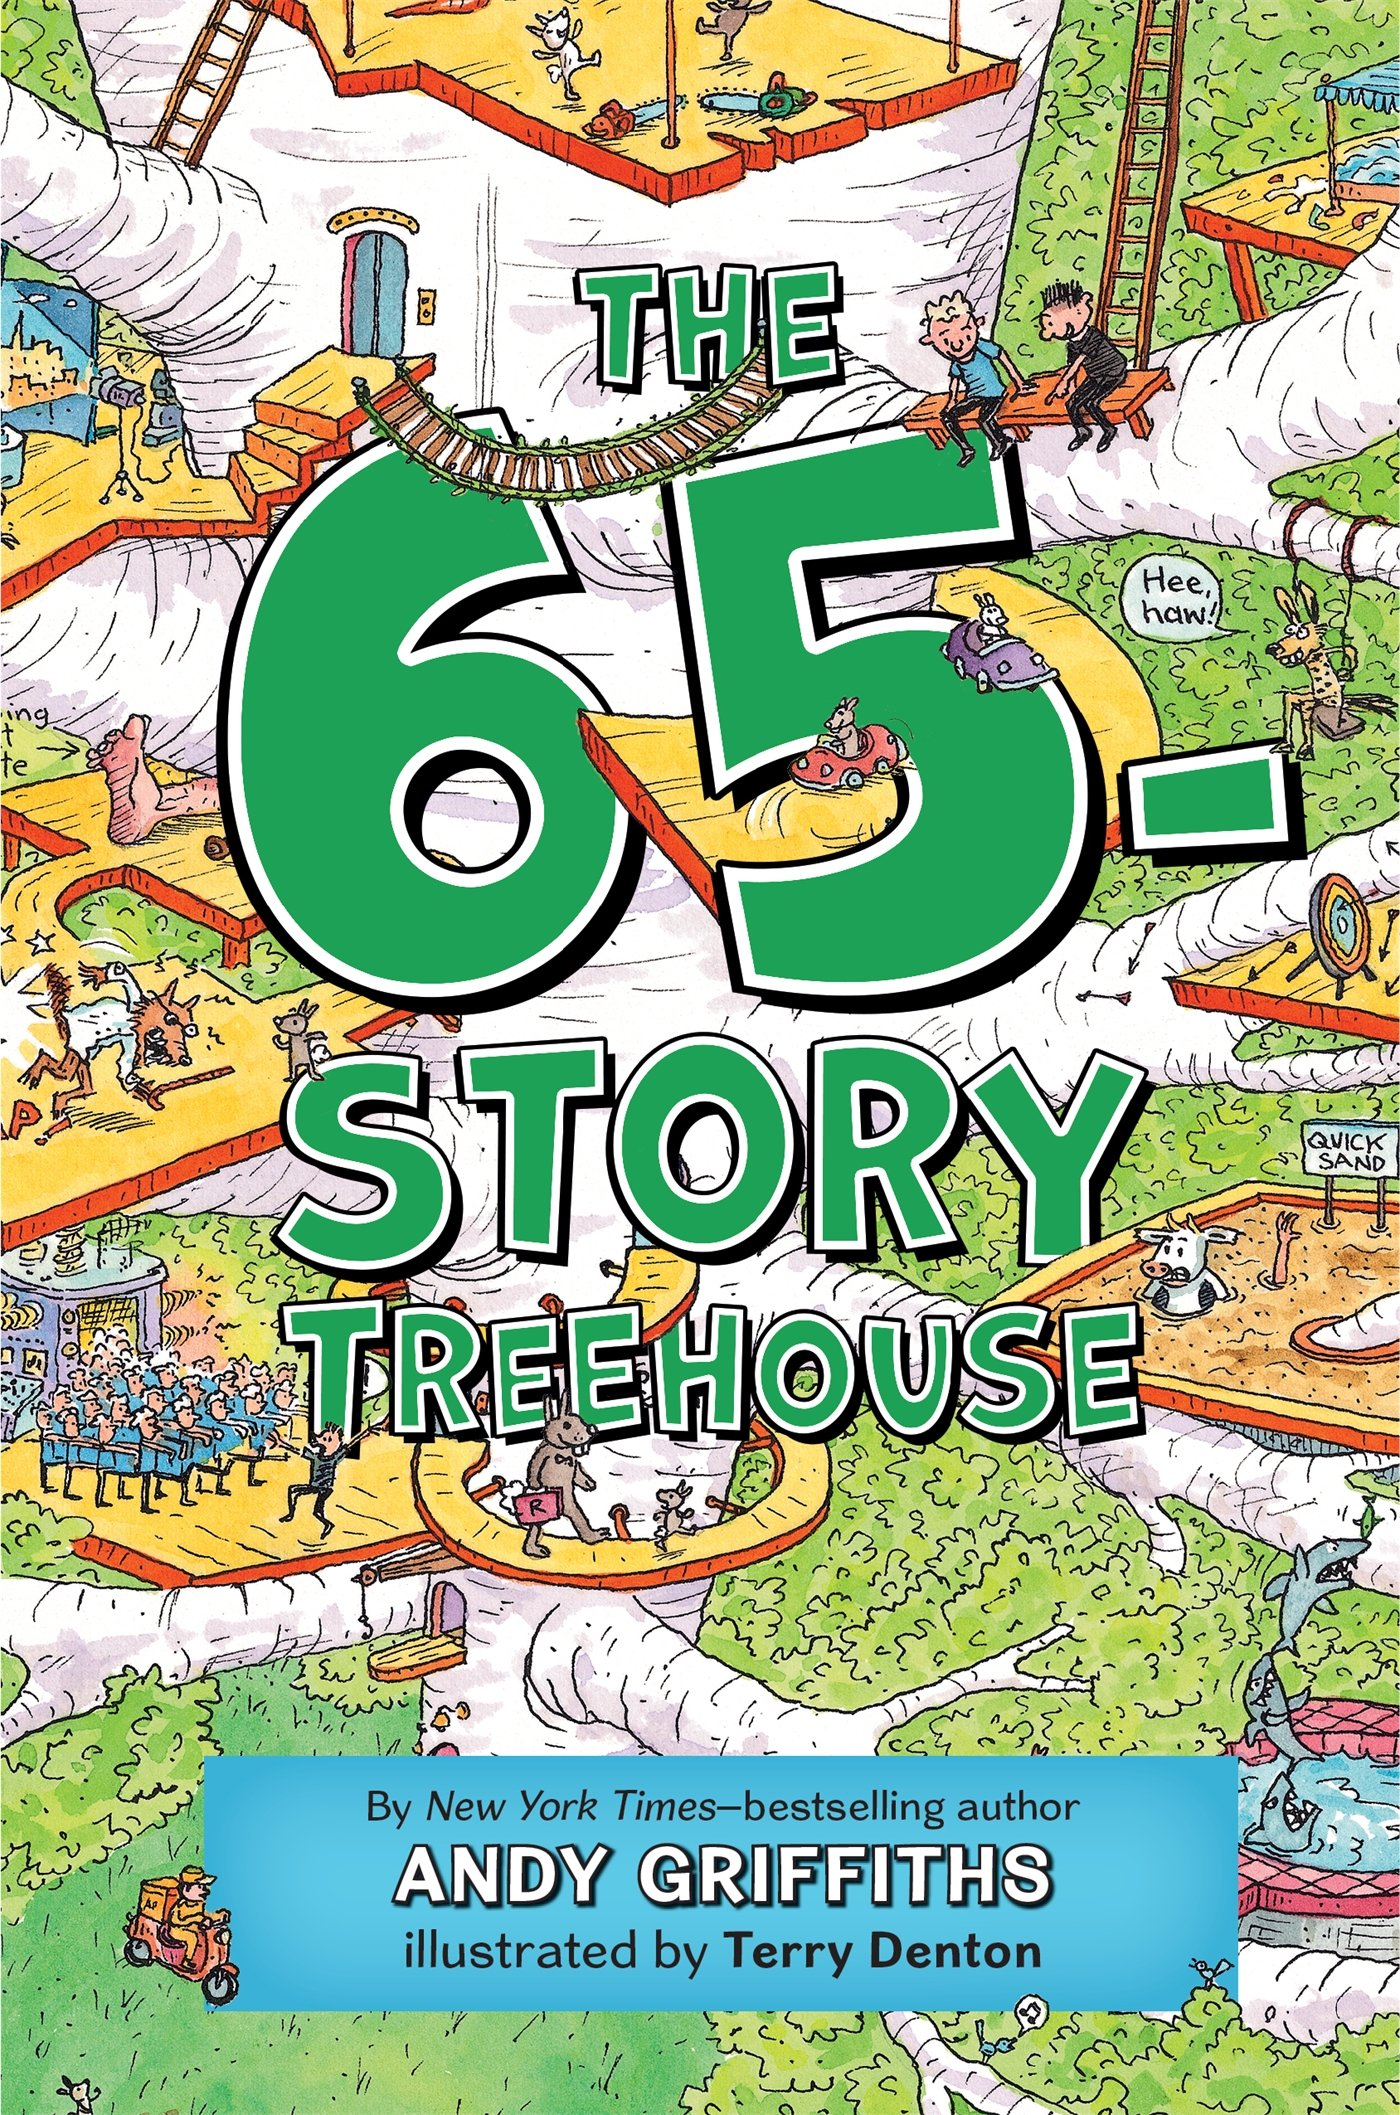 Andy Griffiths Treehouse Part - 41: The 65-Story Treehouse (The Treehouse Books): Andy Griffiths, Terry Denton:  9781250102461: Amazon.com: Books